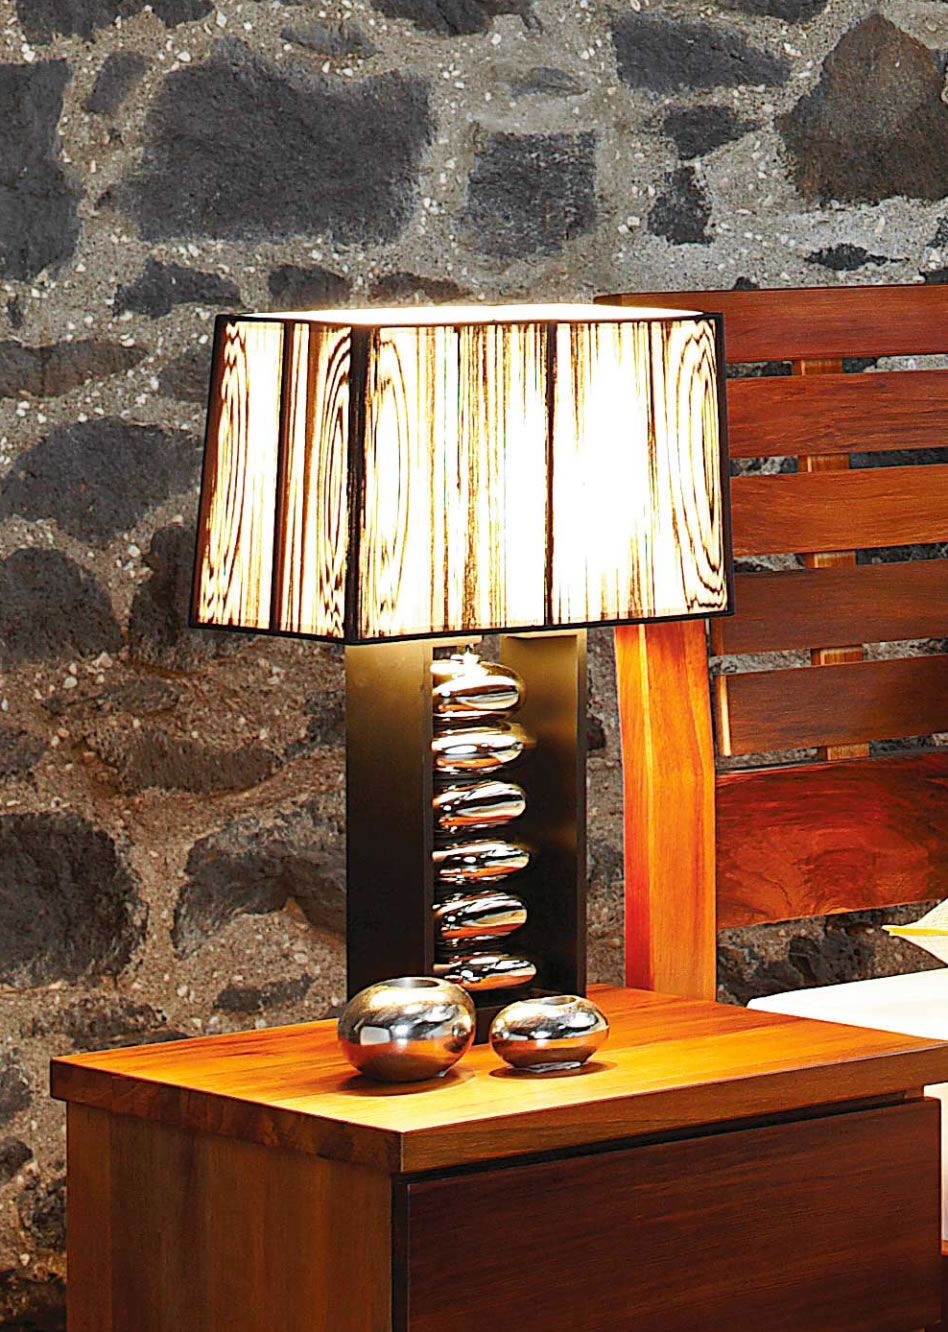 Boxed Pebble Lamp by Eunice Taylor from Harvey Norman New